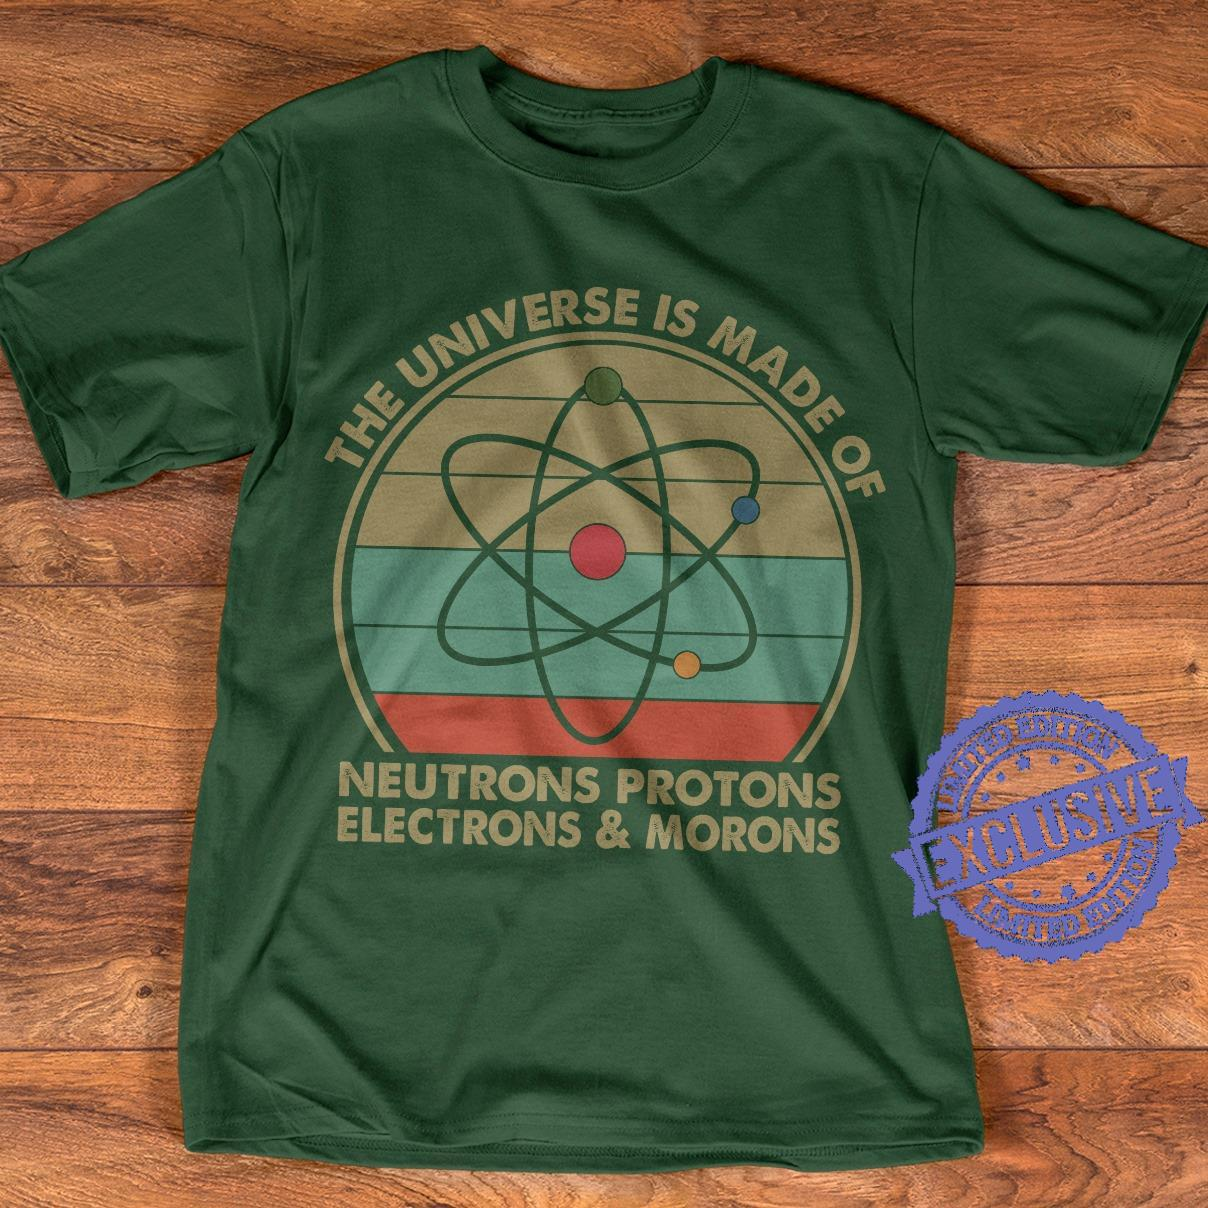 The universe is made of neutrons protons electrons morons shirt